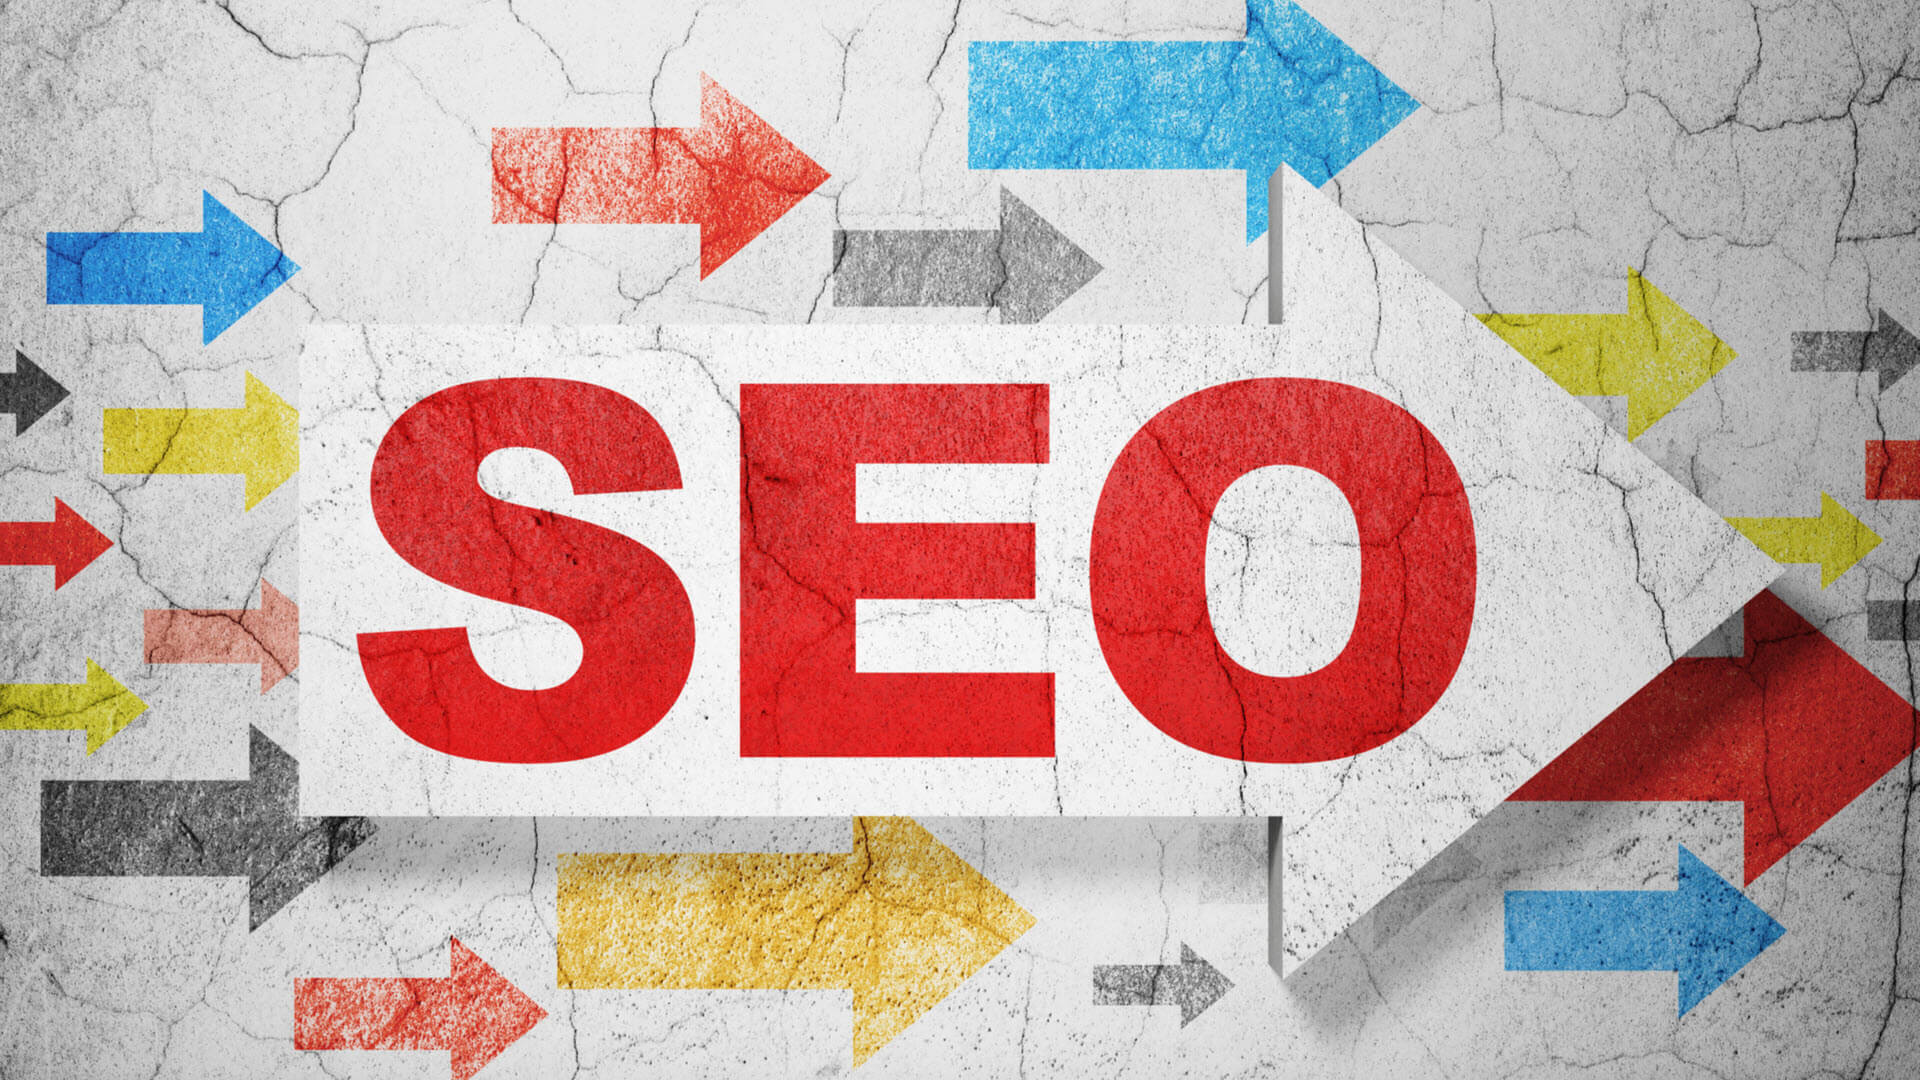 PPC - Majority of SMBs doing SEO are in-housing